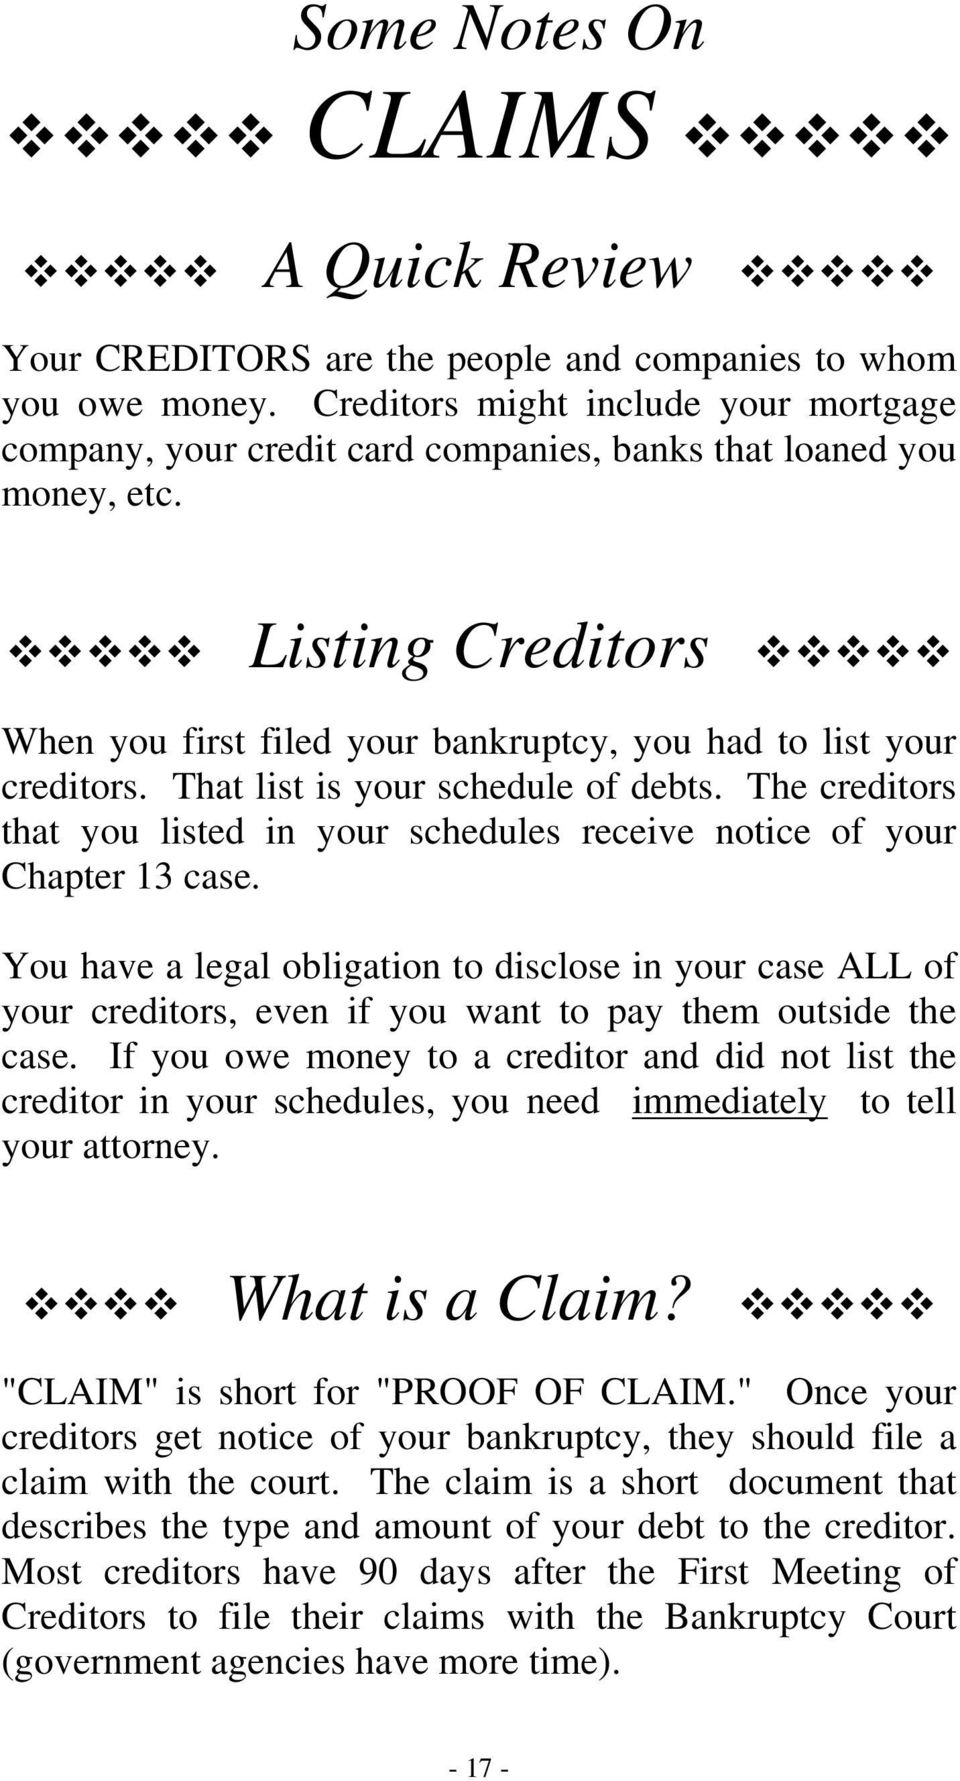 That list is your schedule of debts. The creditors that you listed in your schedules receive notice of your Chapter 13 case.